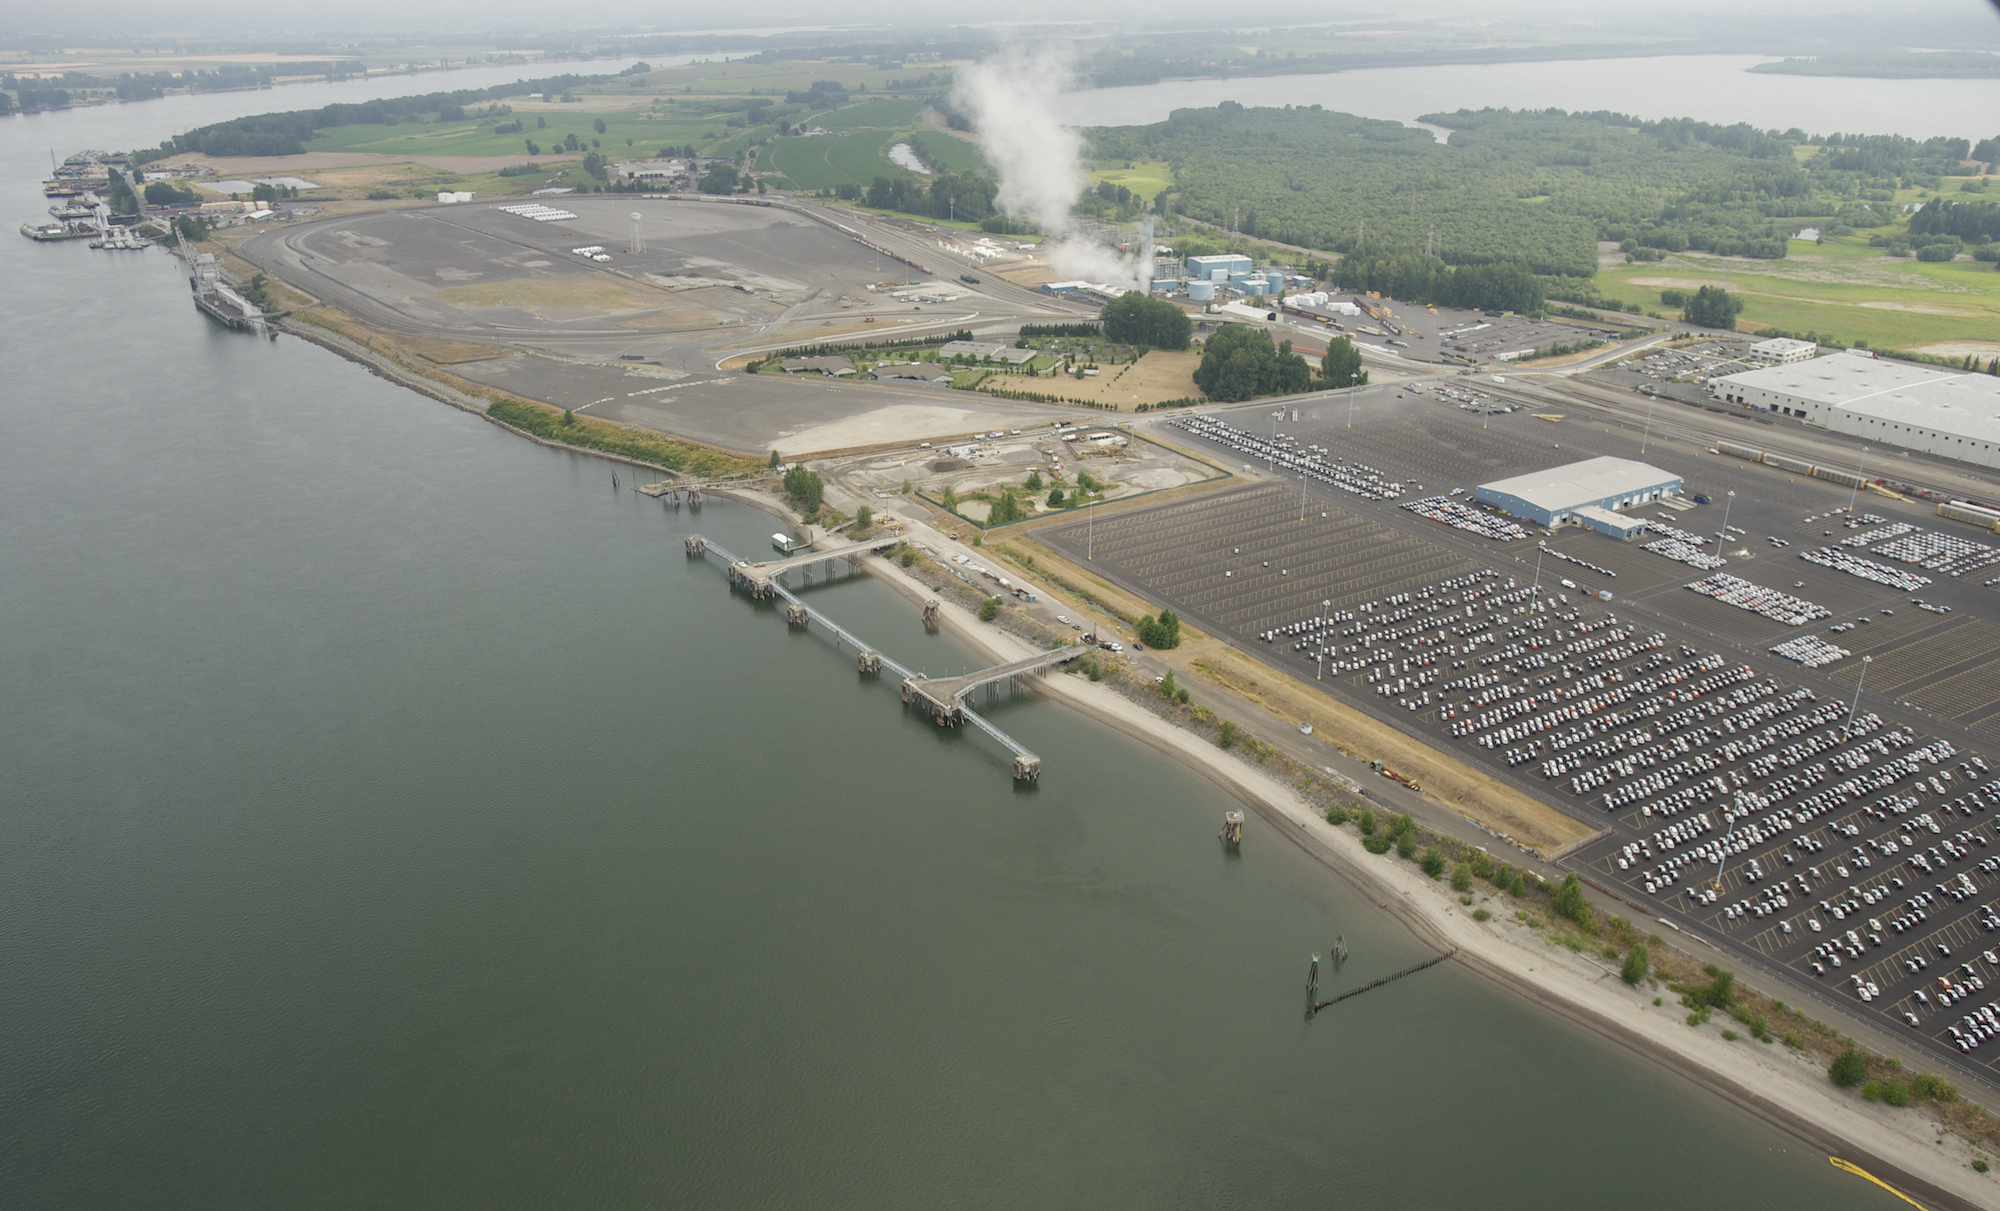 Vancouver oil terminal comment period ends December 18th